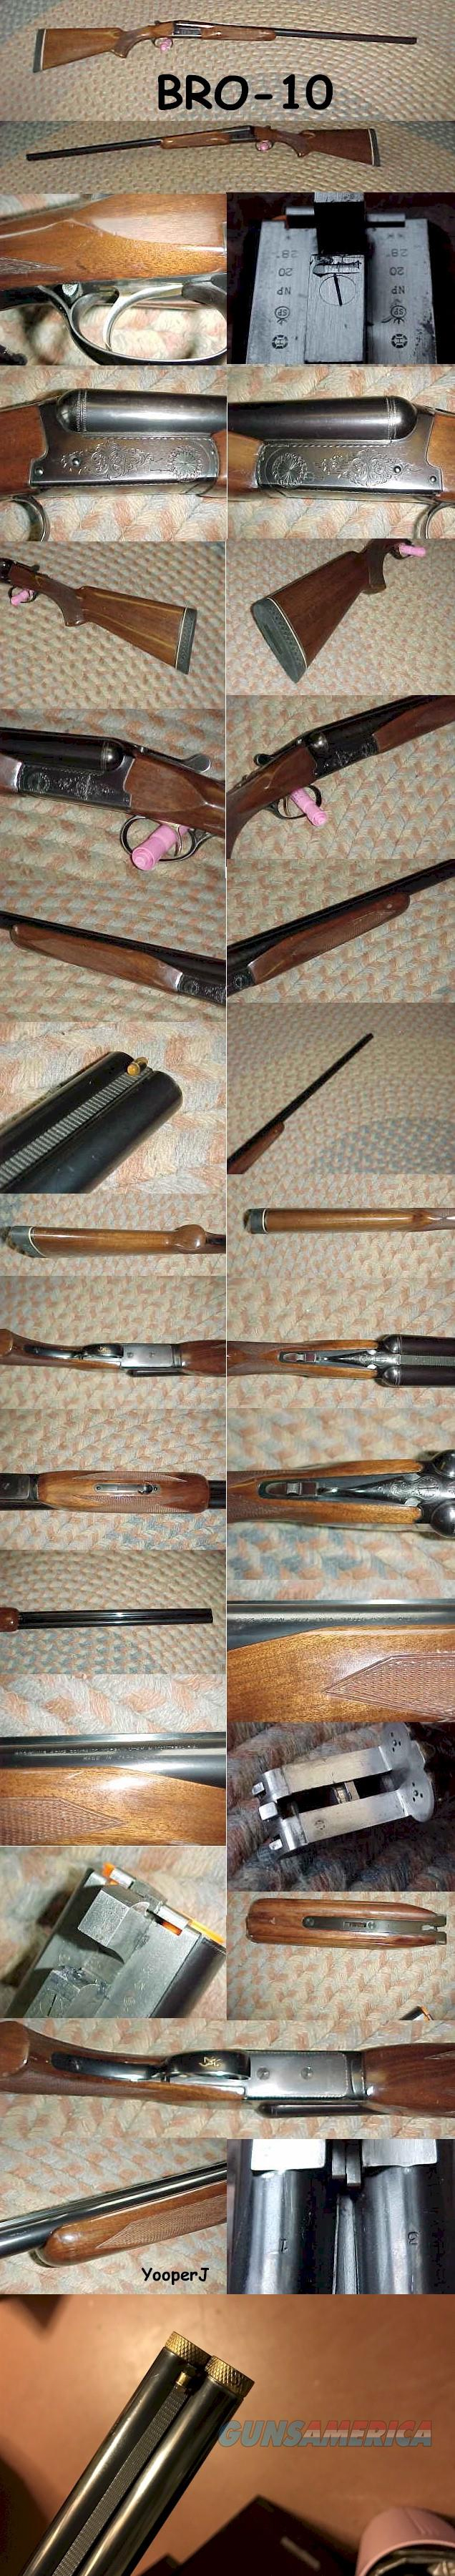 "Browning B-SS SxS choke tubes 20 gauge 28"" barrels  Guns > Shotguns > Browning Shotguns > Side by Sides"